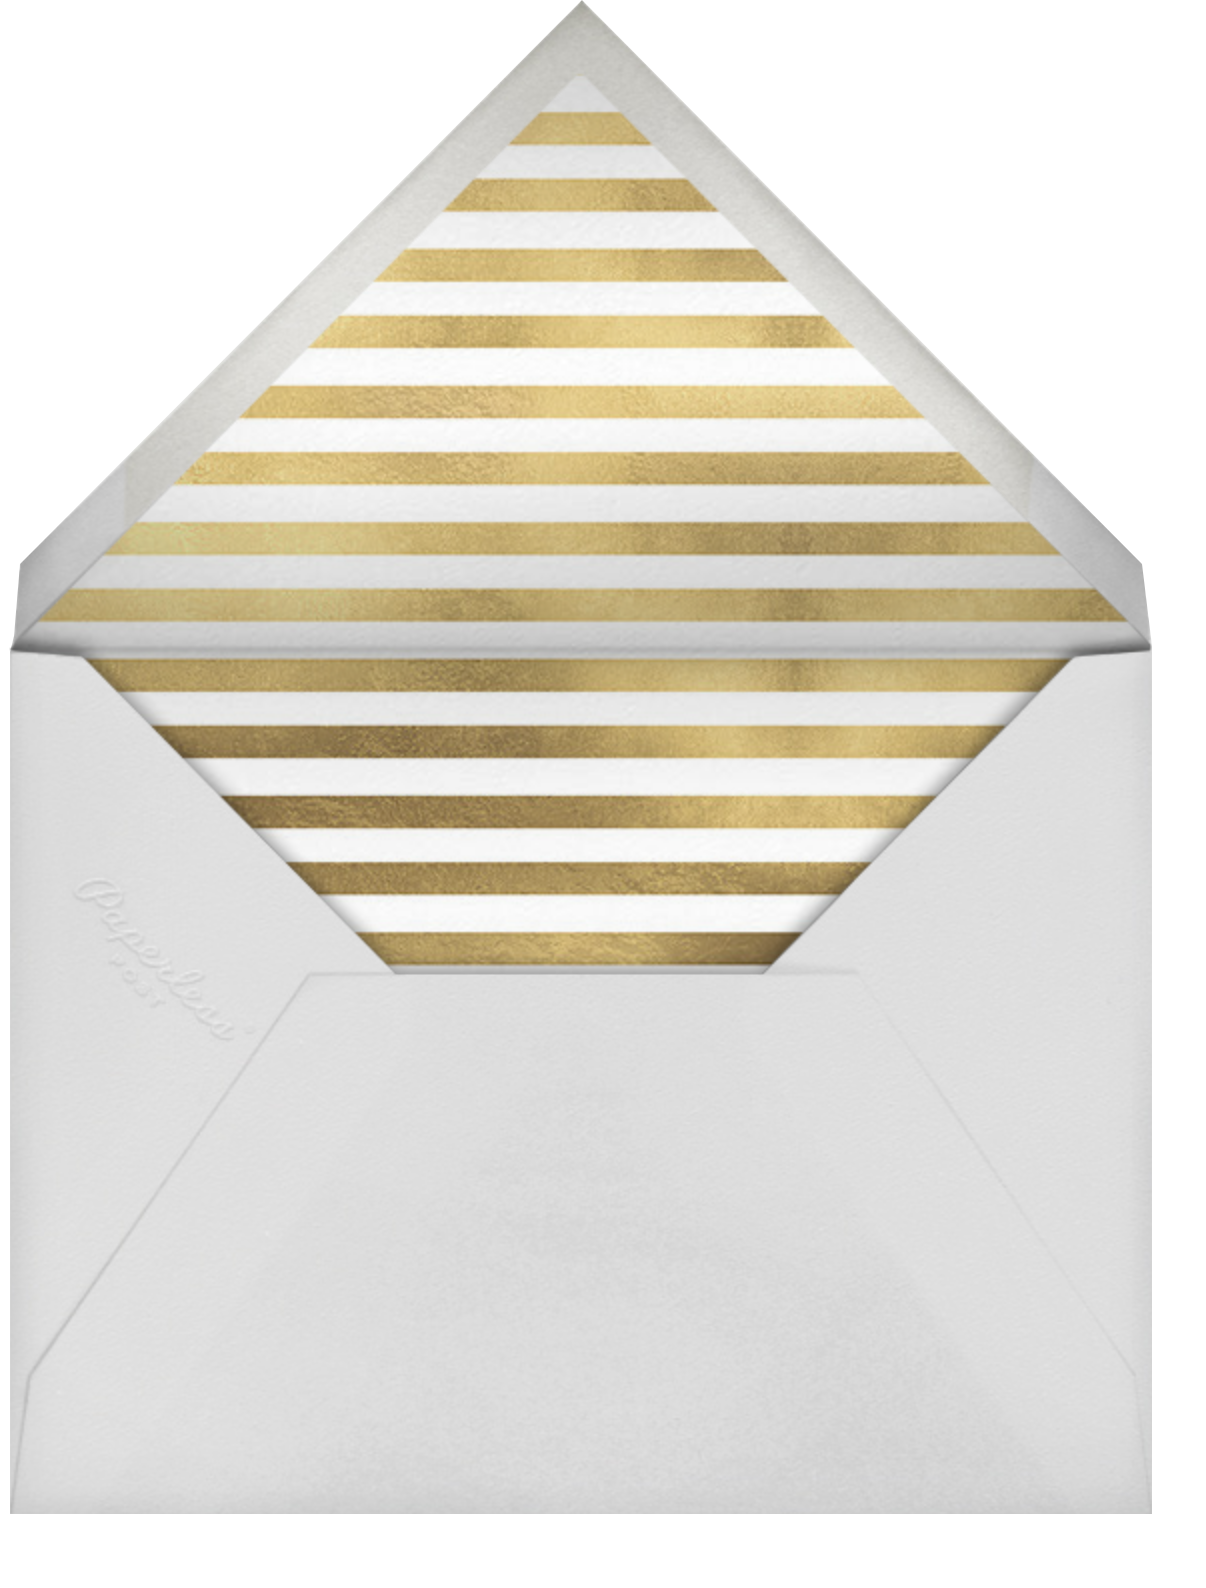 Confetti Horizontal (Double-Sided Photo) - Gold - kate spade new york - New Year - envelope back